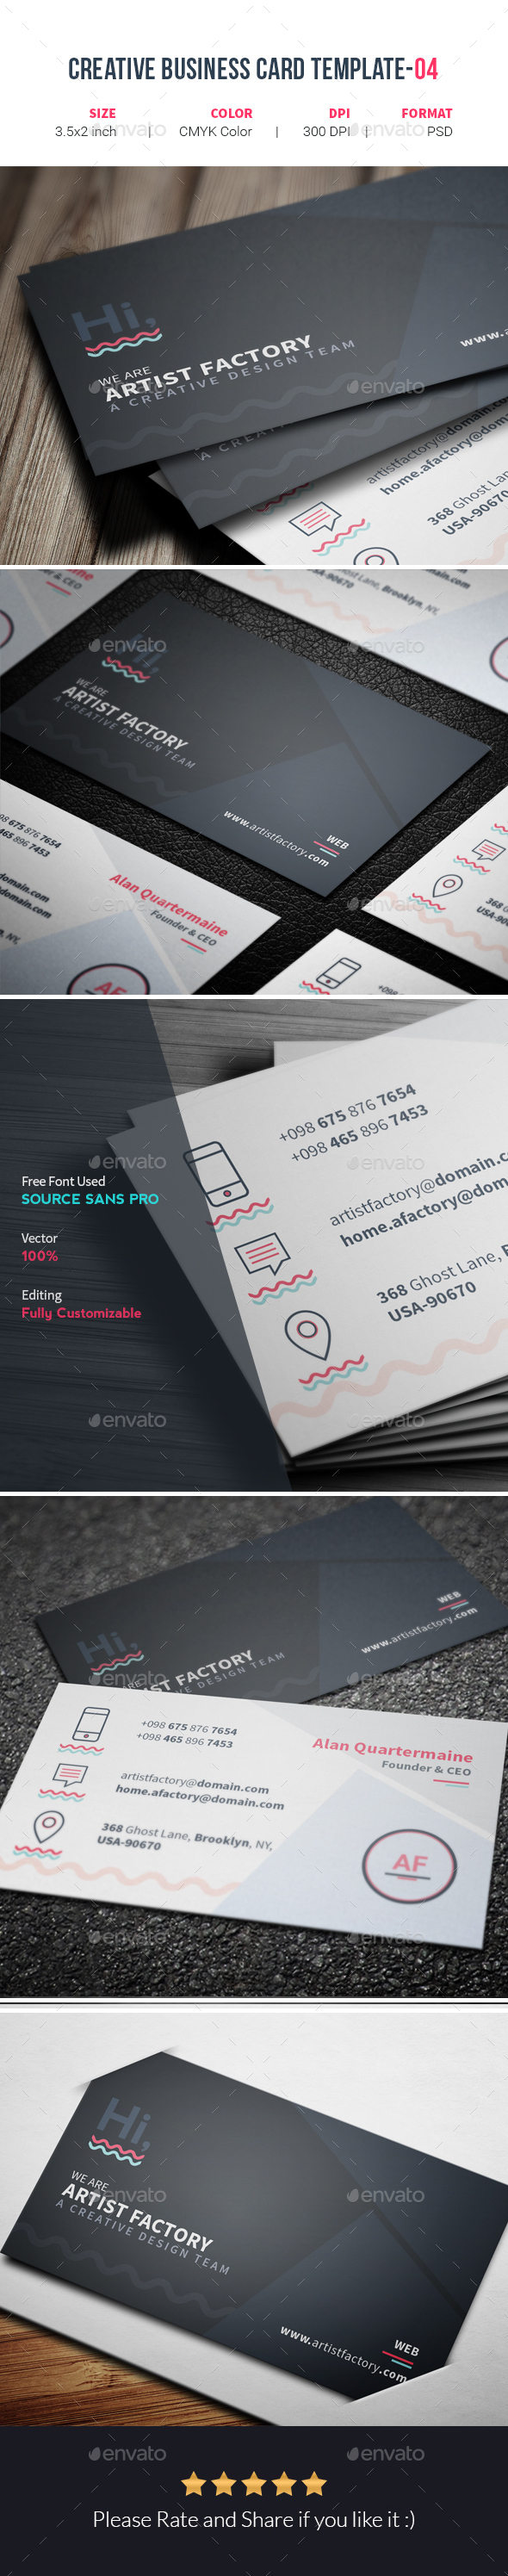 Creative Business Card Template-04 - Creative Business Cards